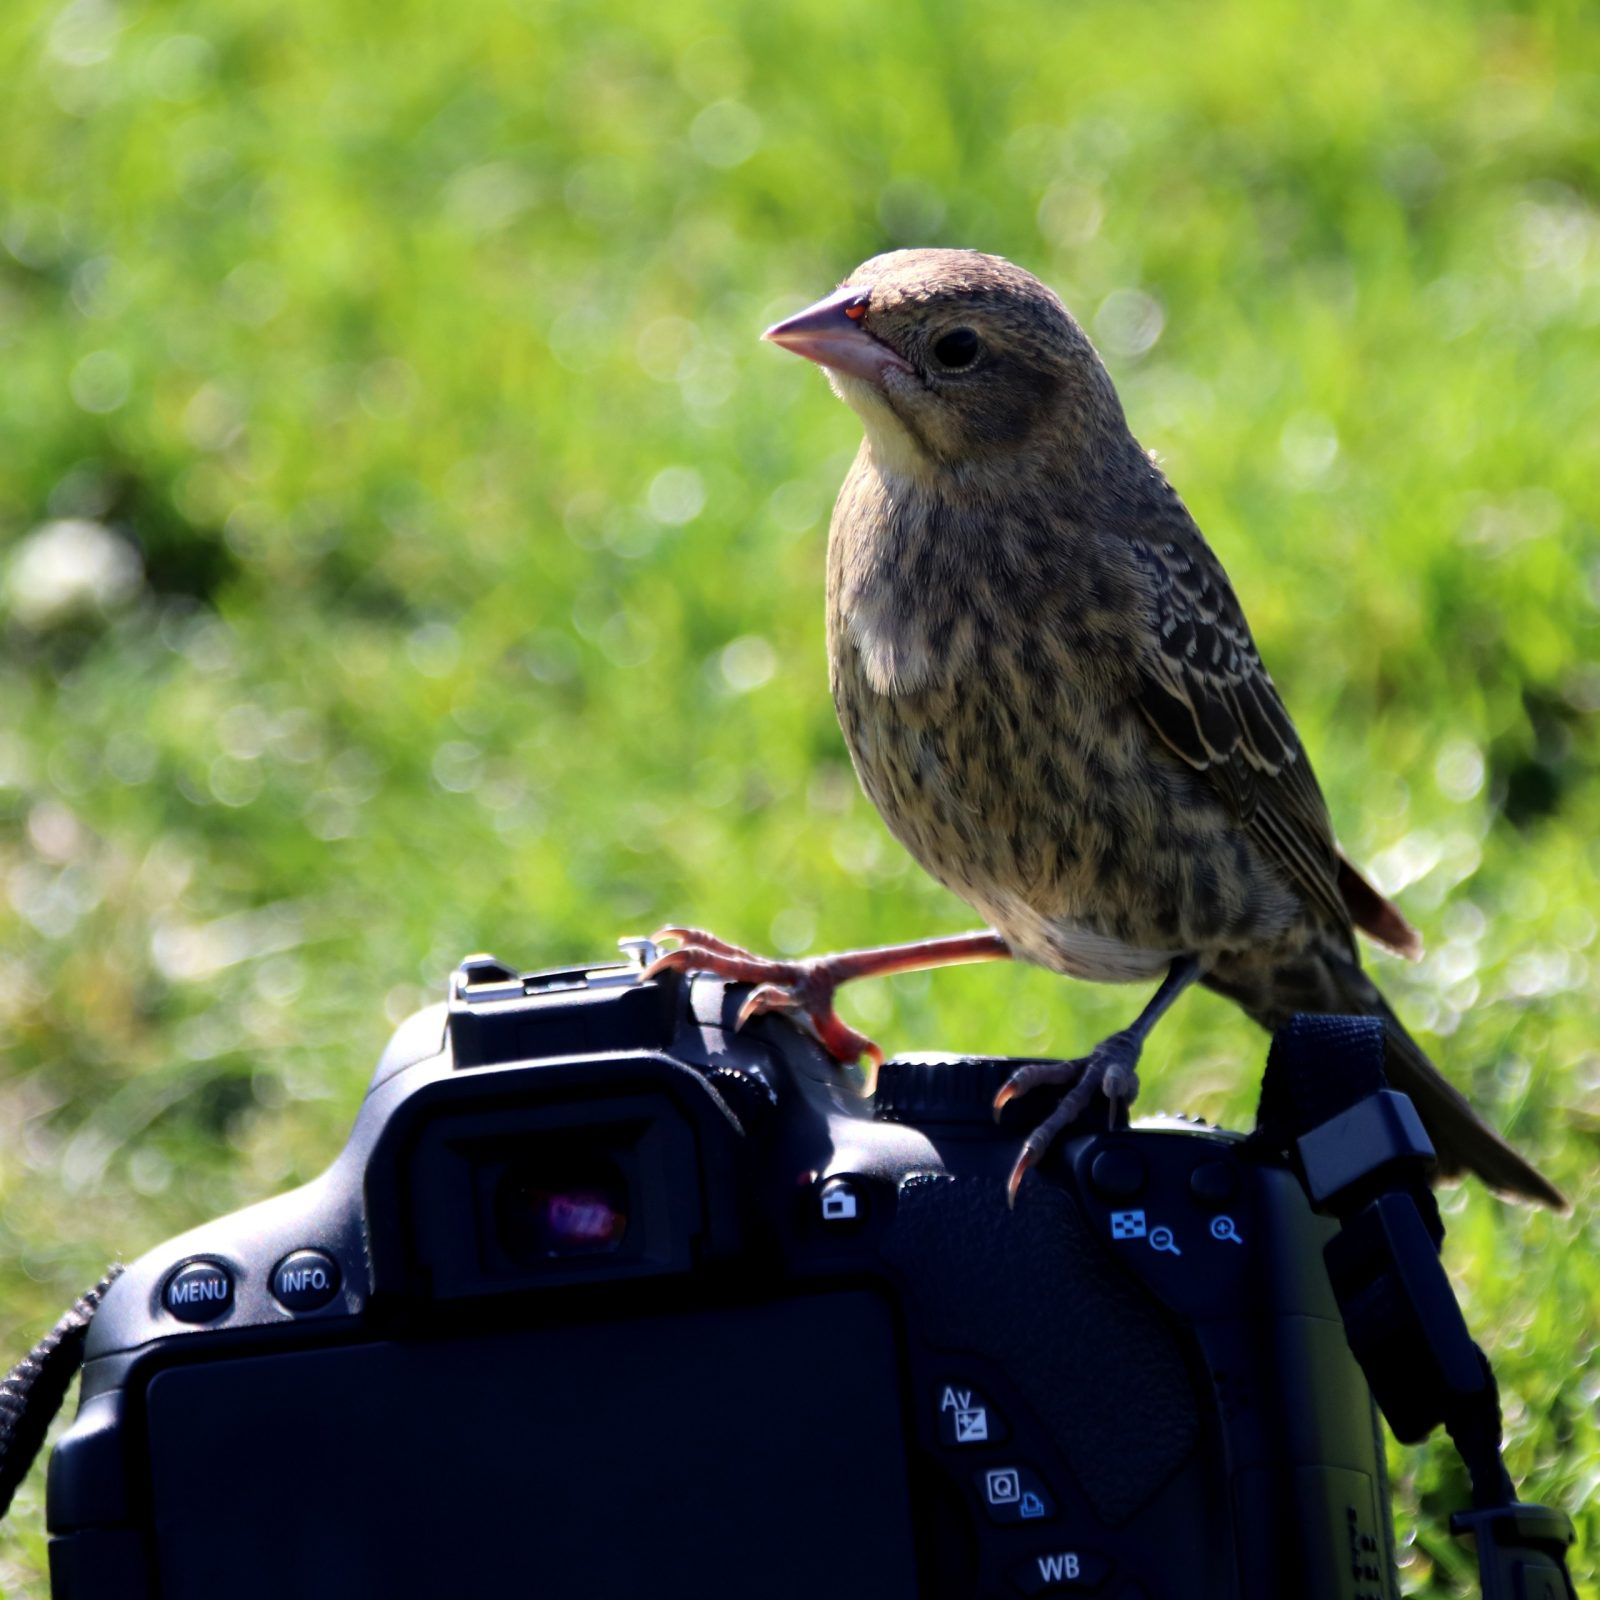 Photo of a bird perched on a camera